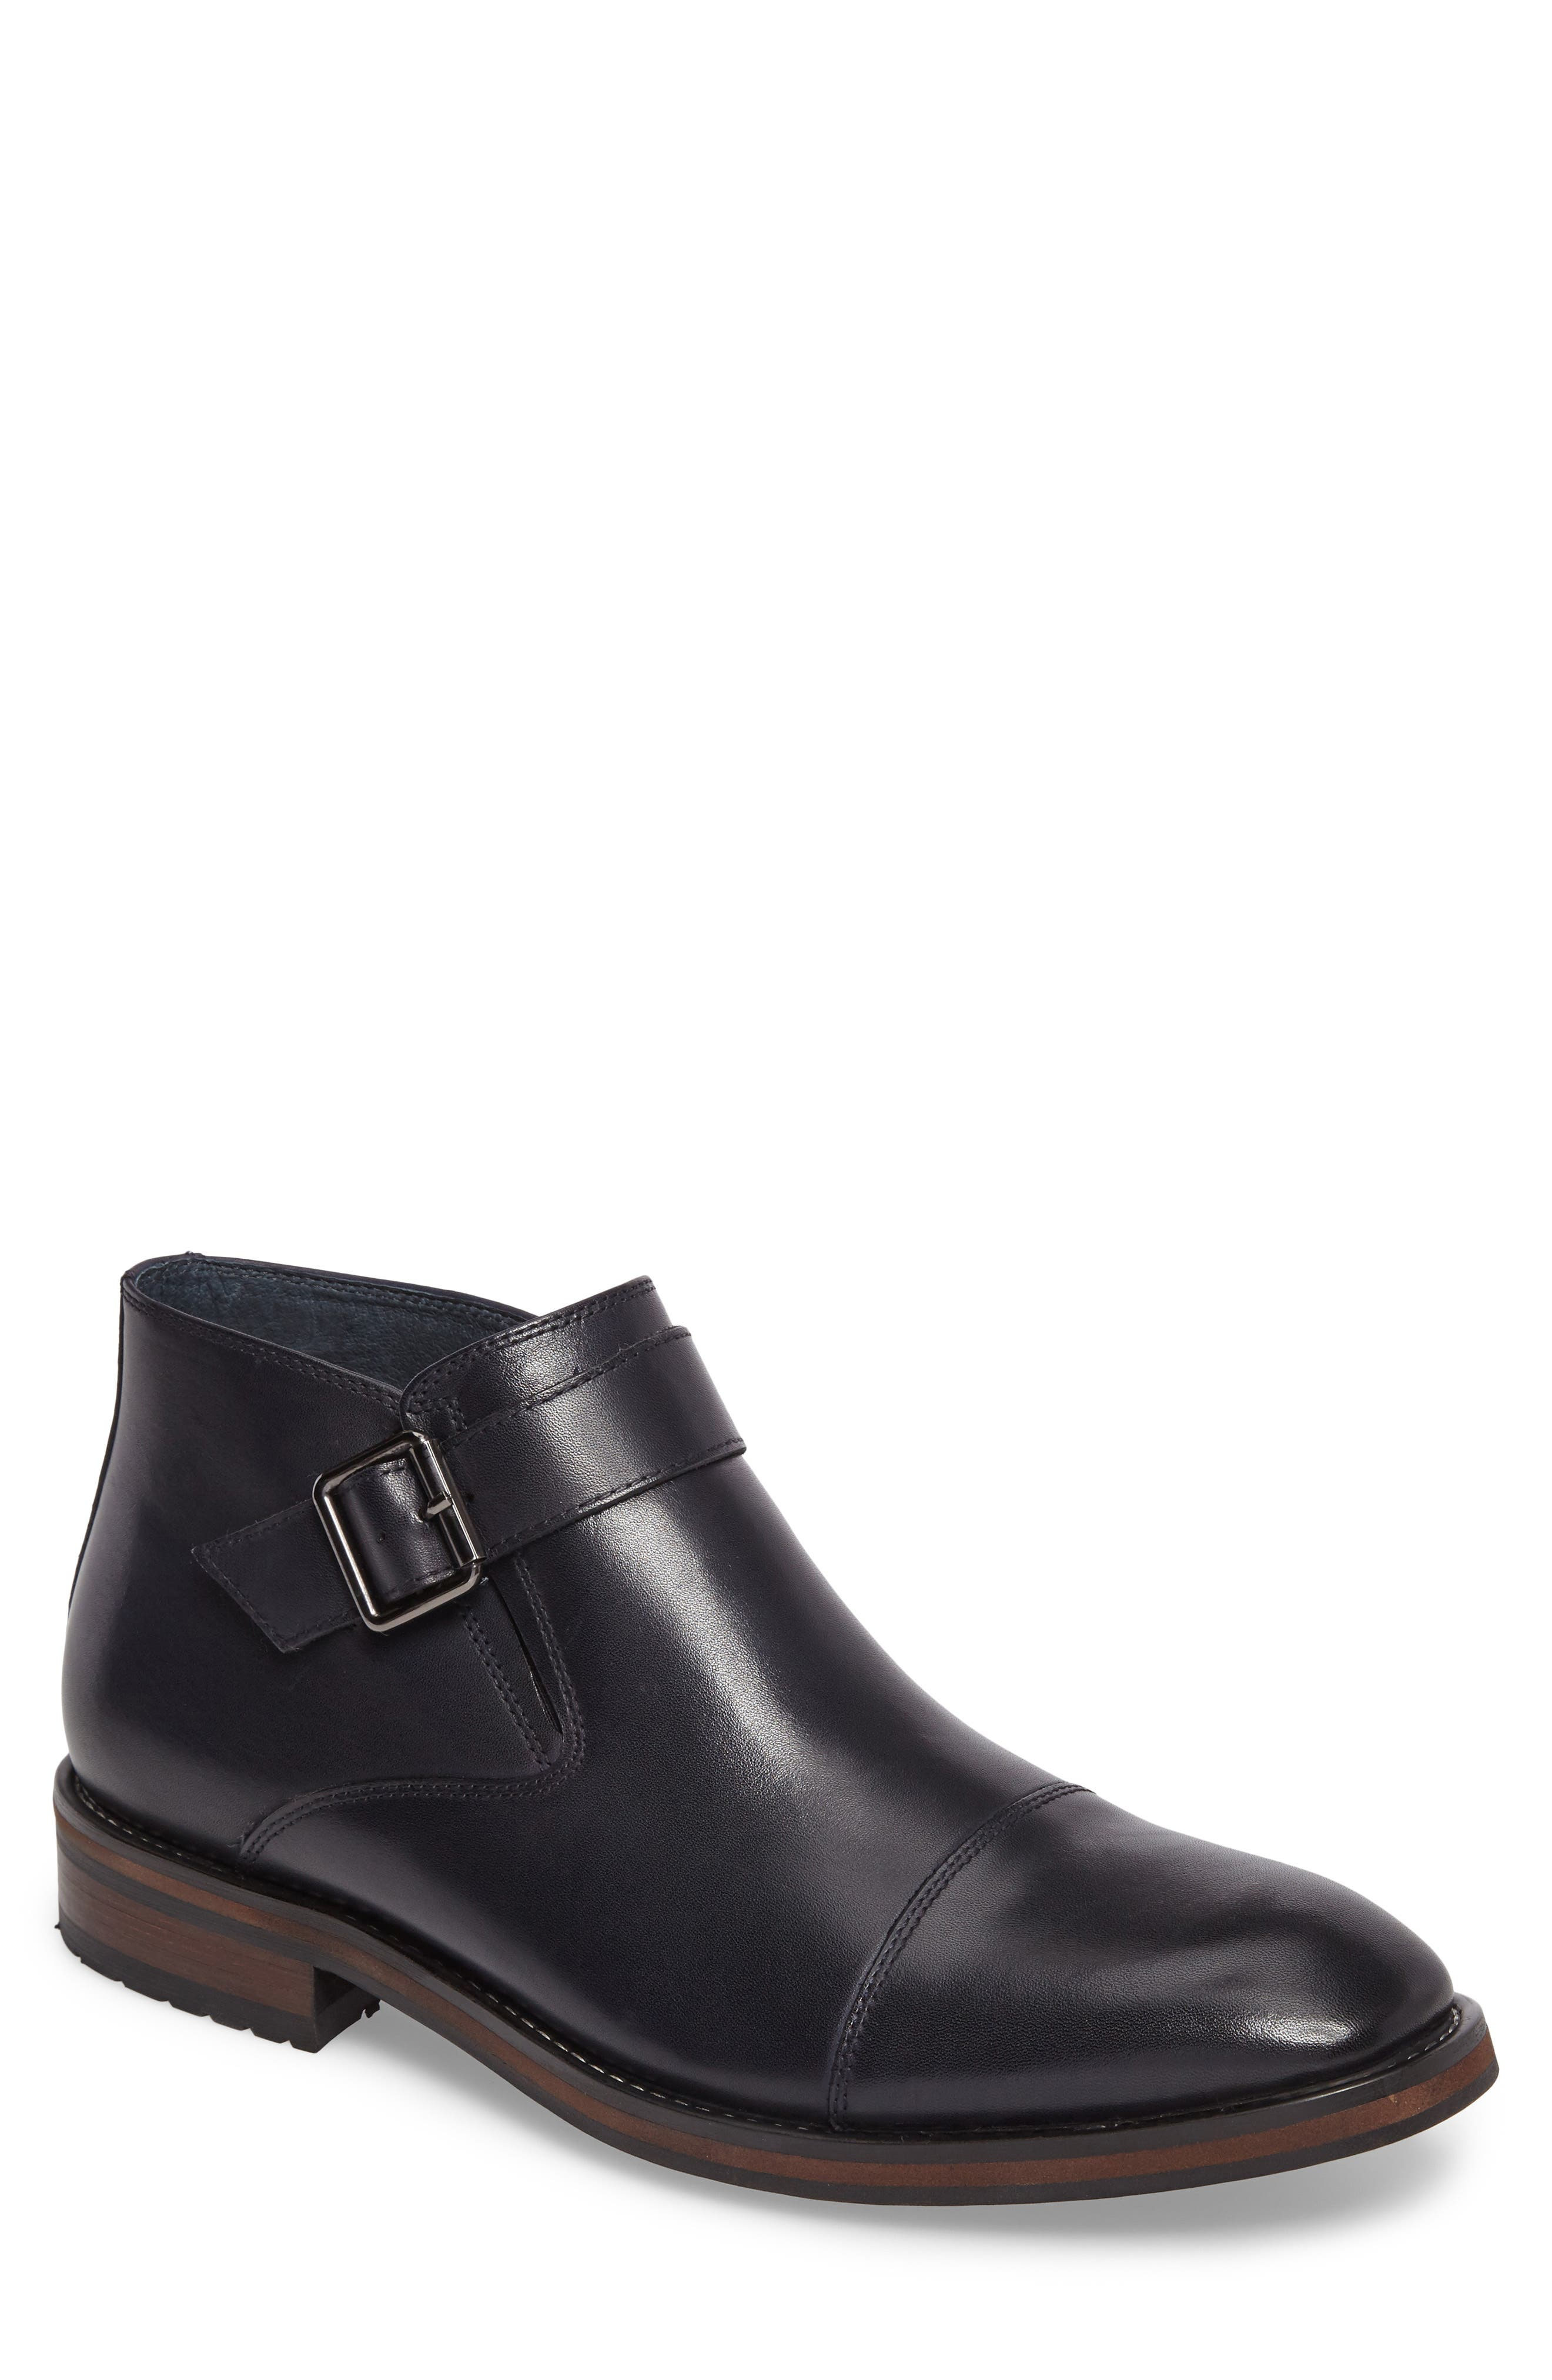 Alternate Image 1 Selected - Zanzara Lami Monk Strap Boot (Men)